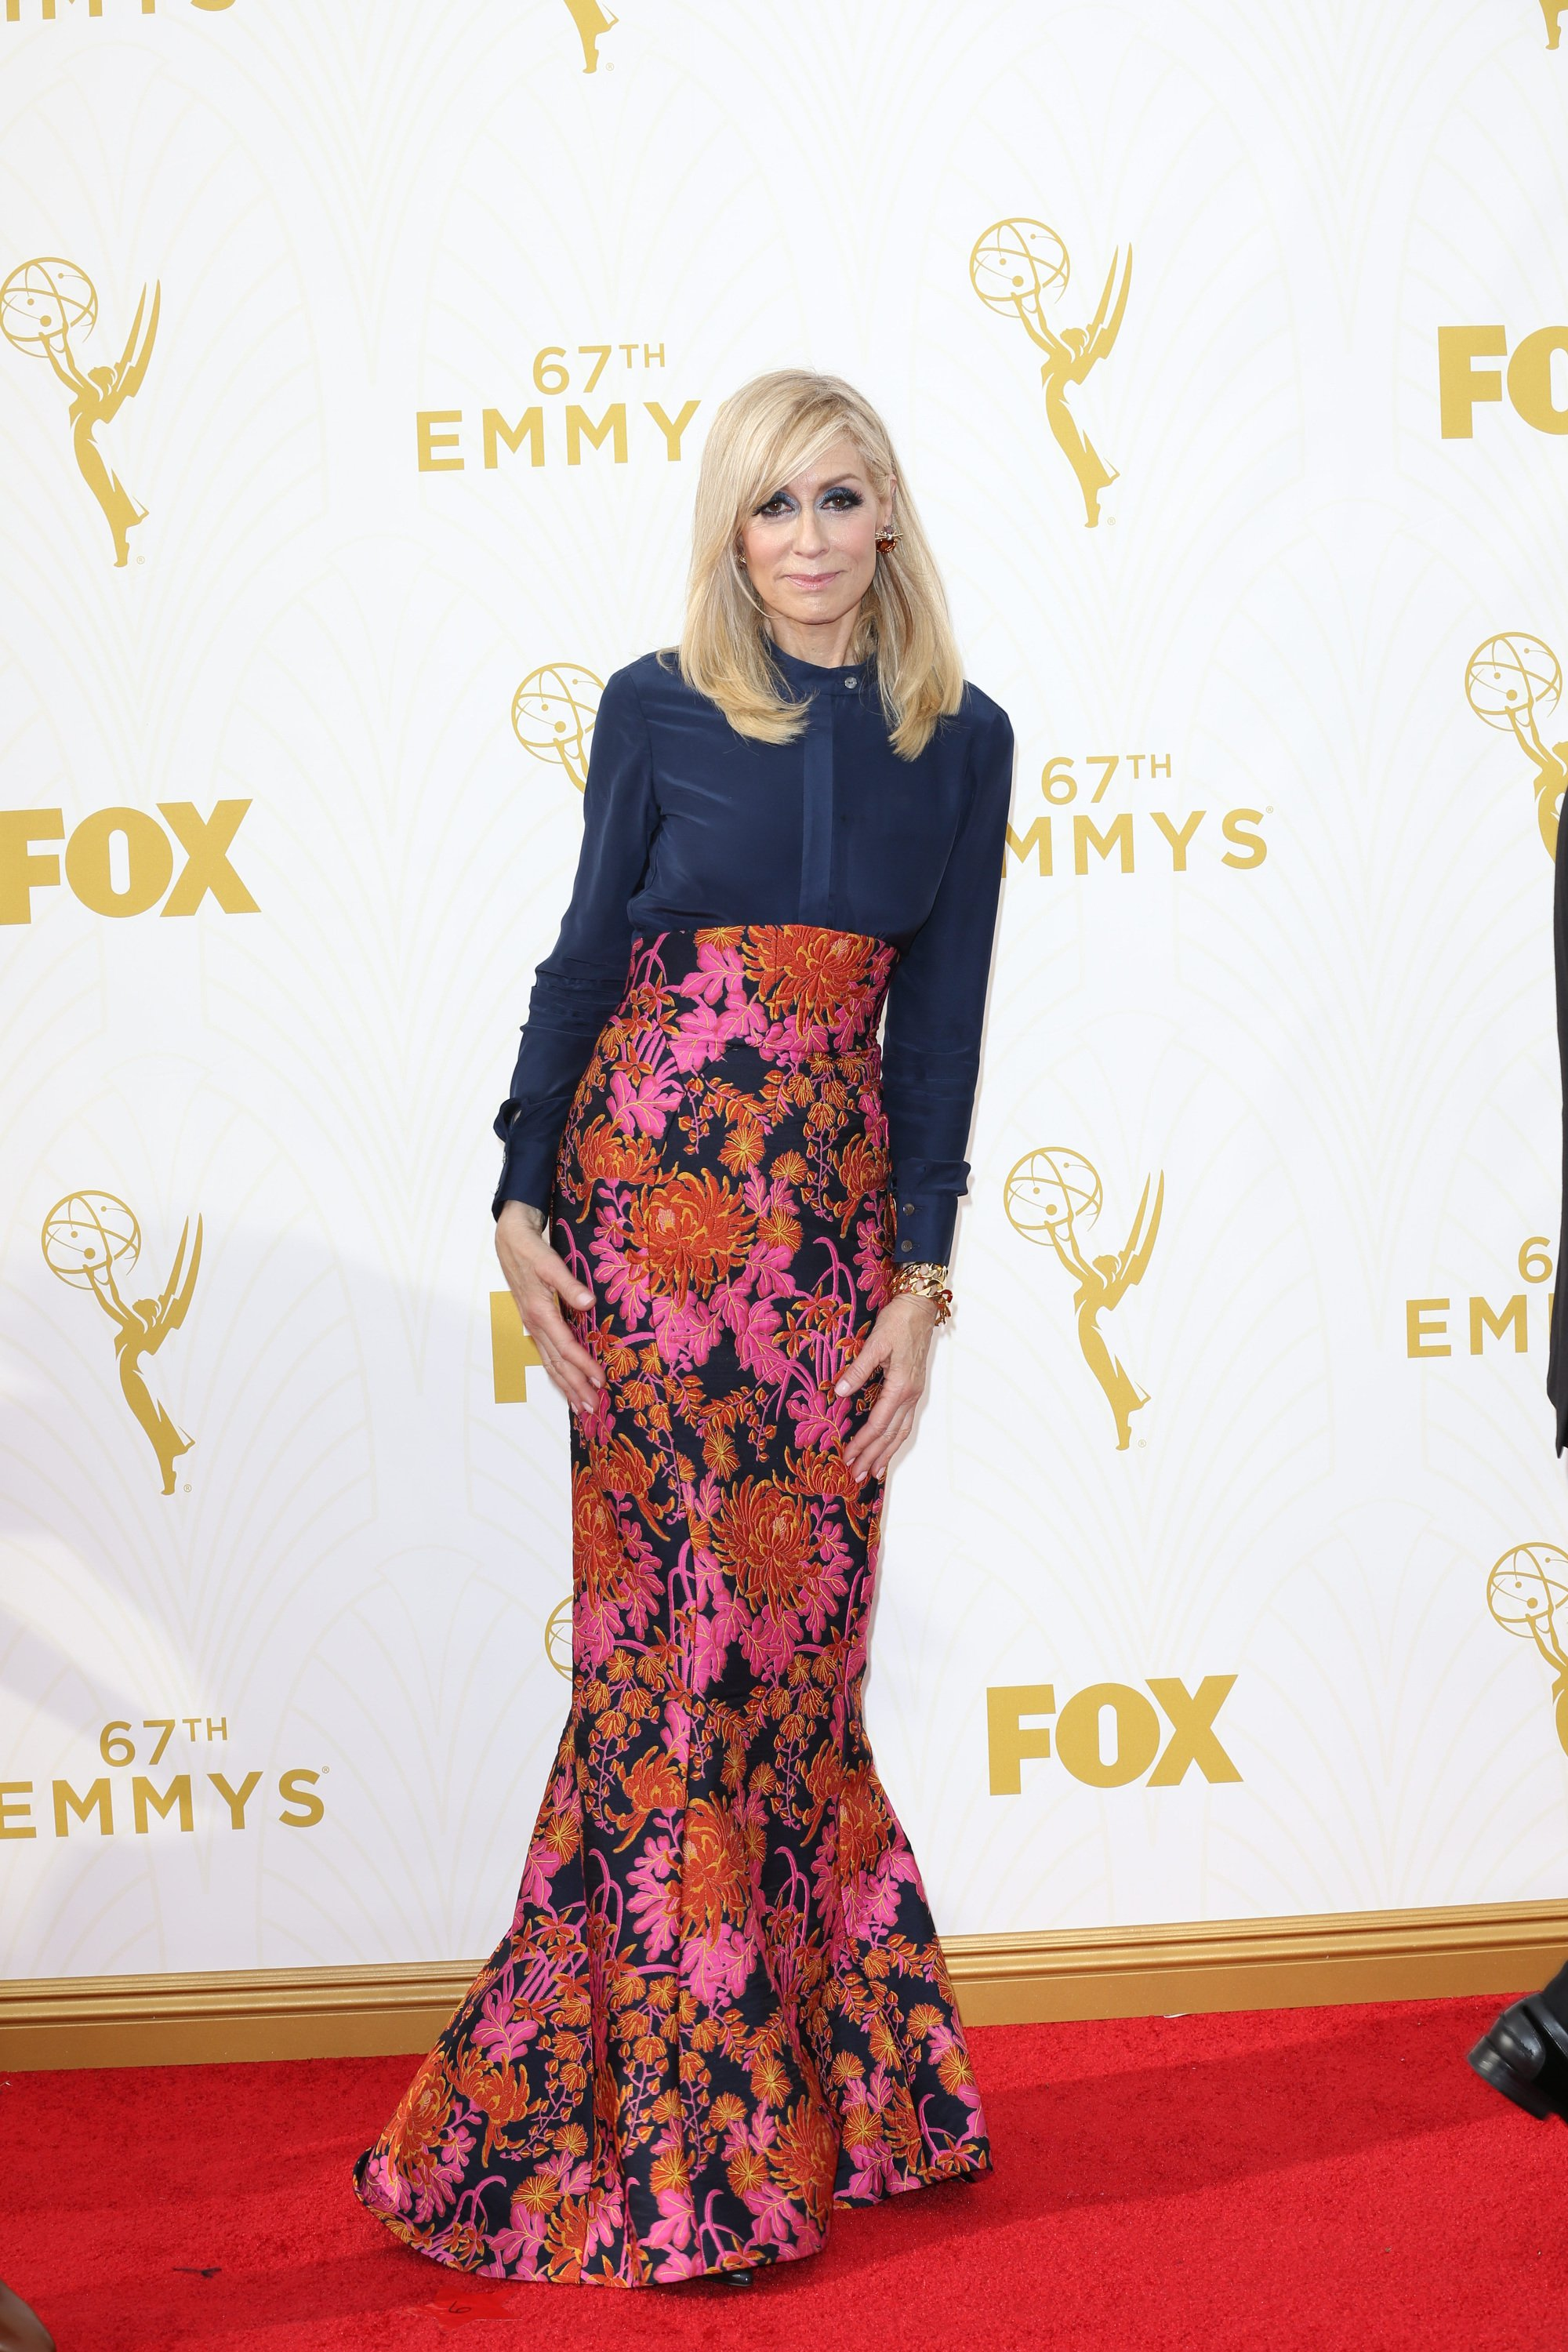 Celebrities arrive at 67th Emmys Red Carpet at Microsoft Theater.  Featuring: Judith Light Where: Los Angeles, California, United States When: 20 Sep 2015 Credit: Brian To/WENN.com